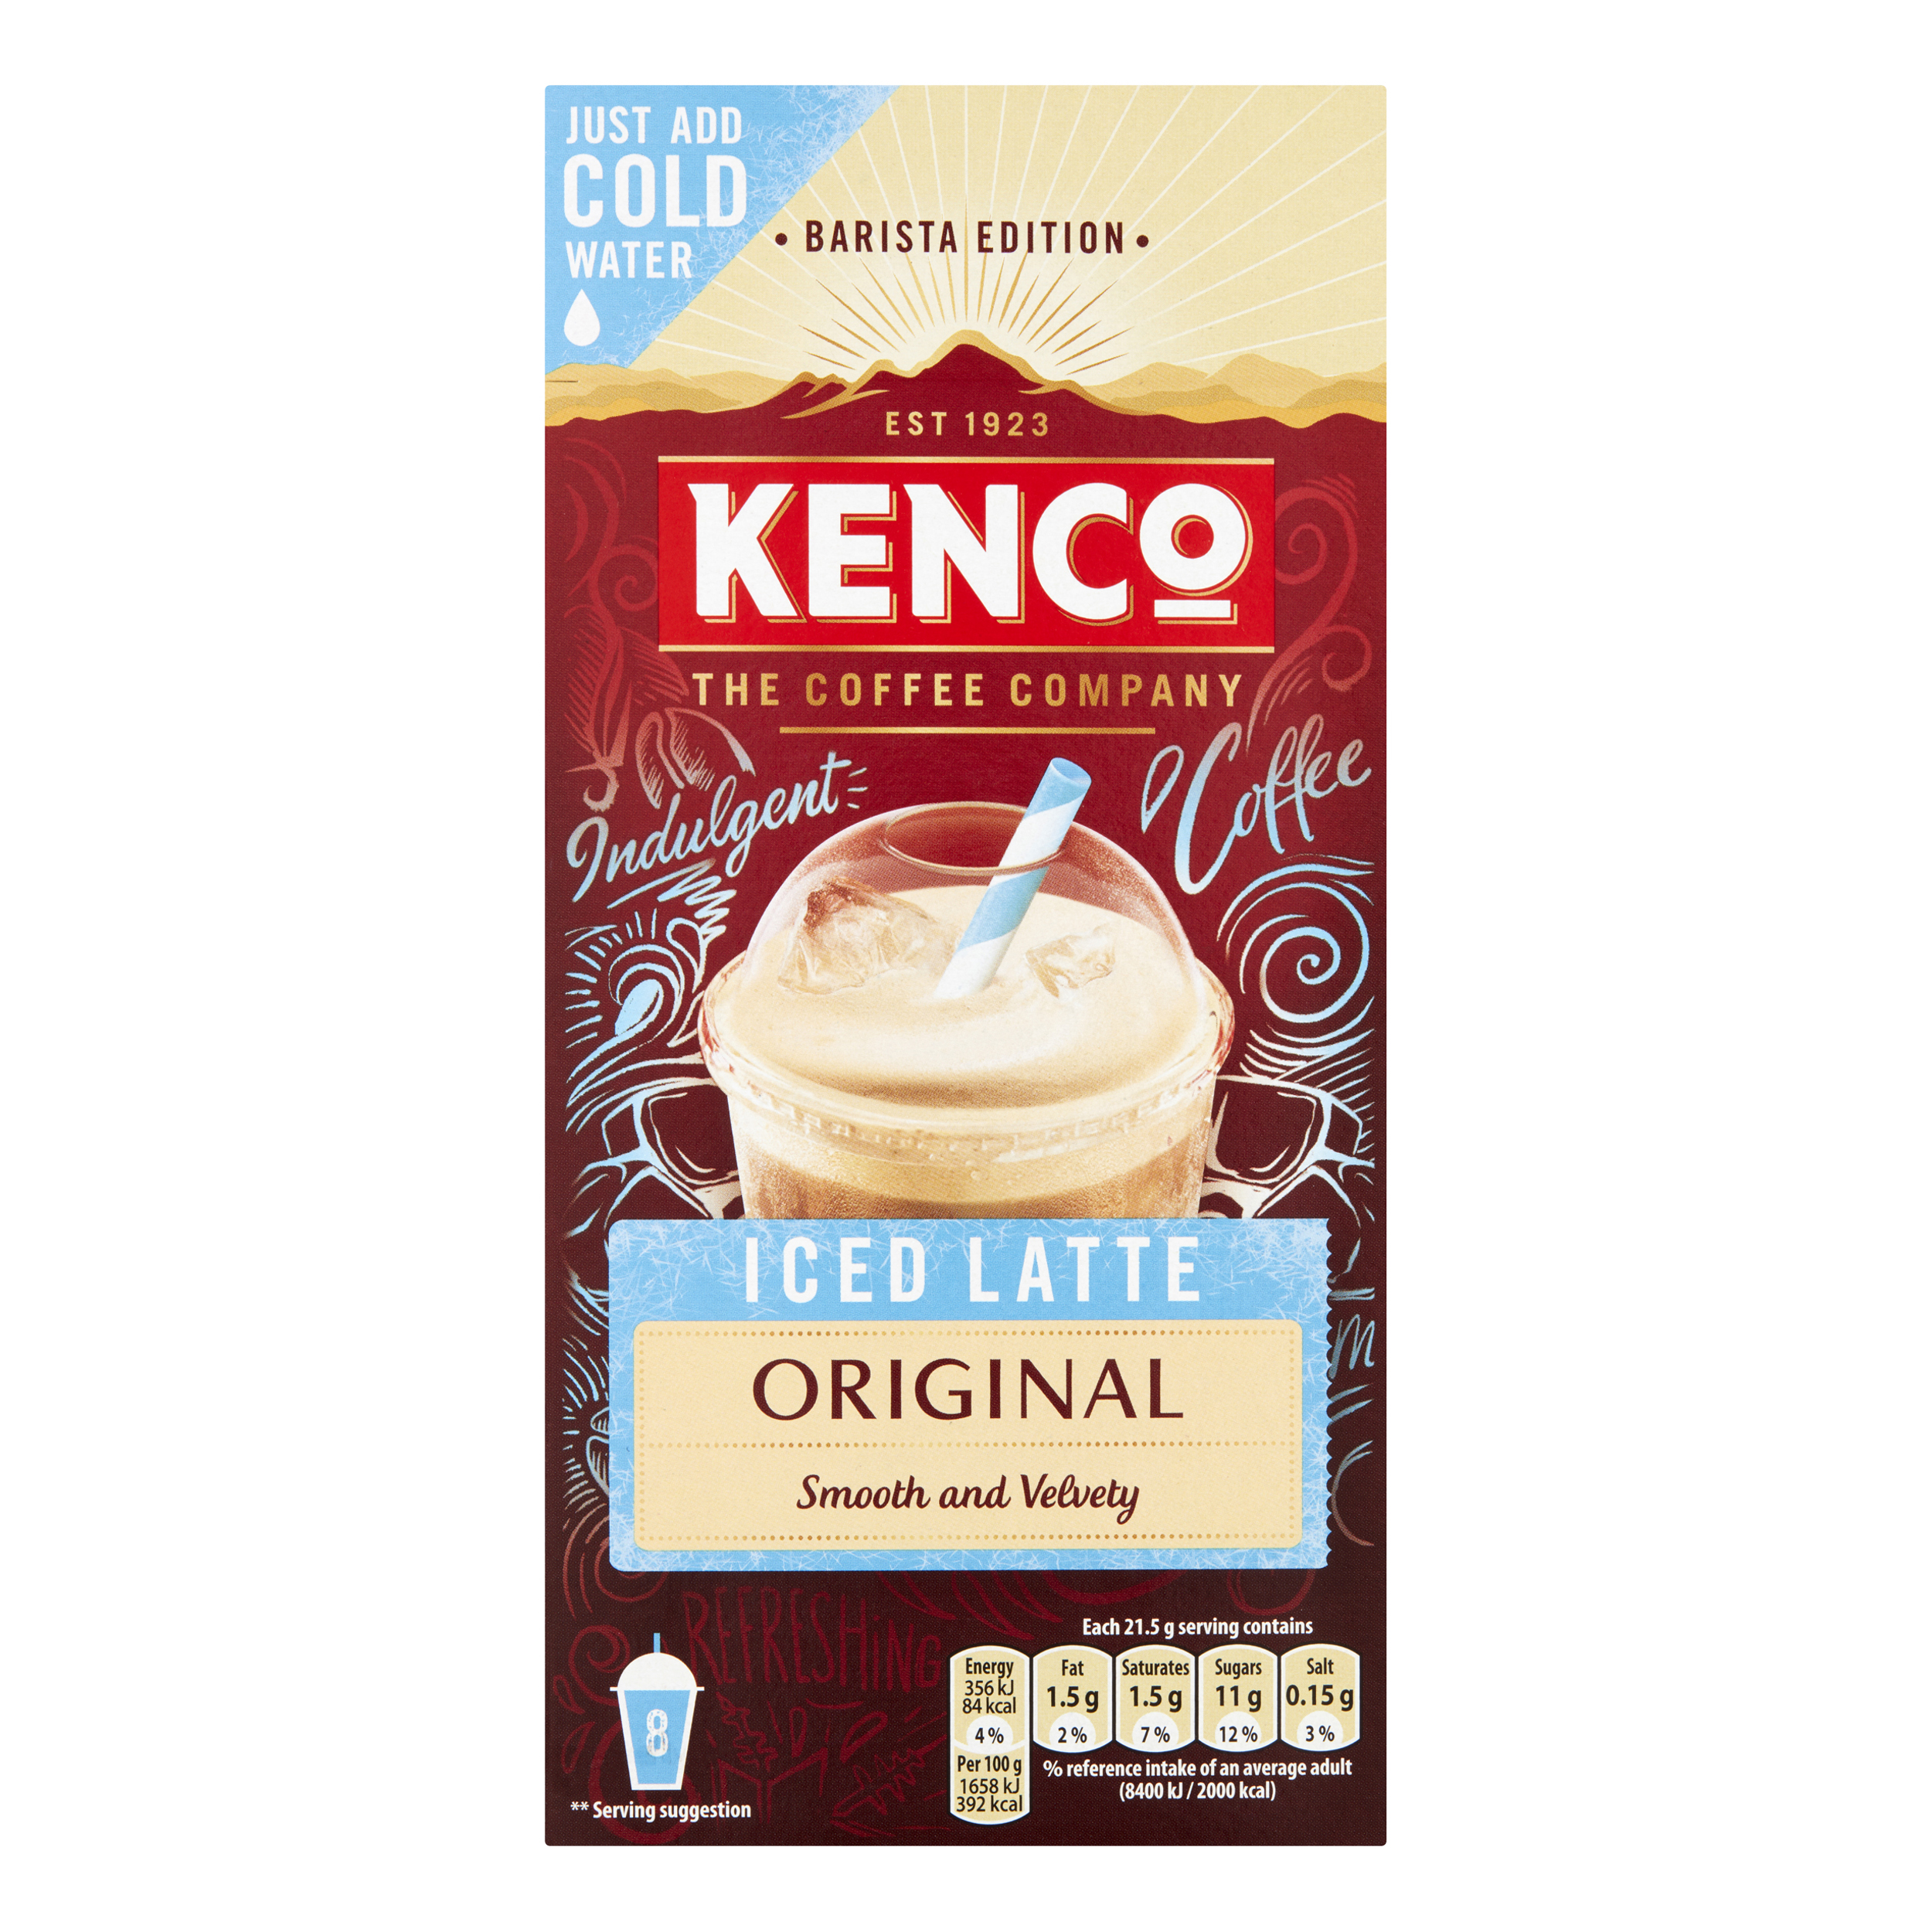 Kenco Iced Latte Original Instant Coffee Ref 4019440 [Pack 8 x 5 Boxes]